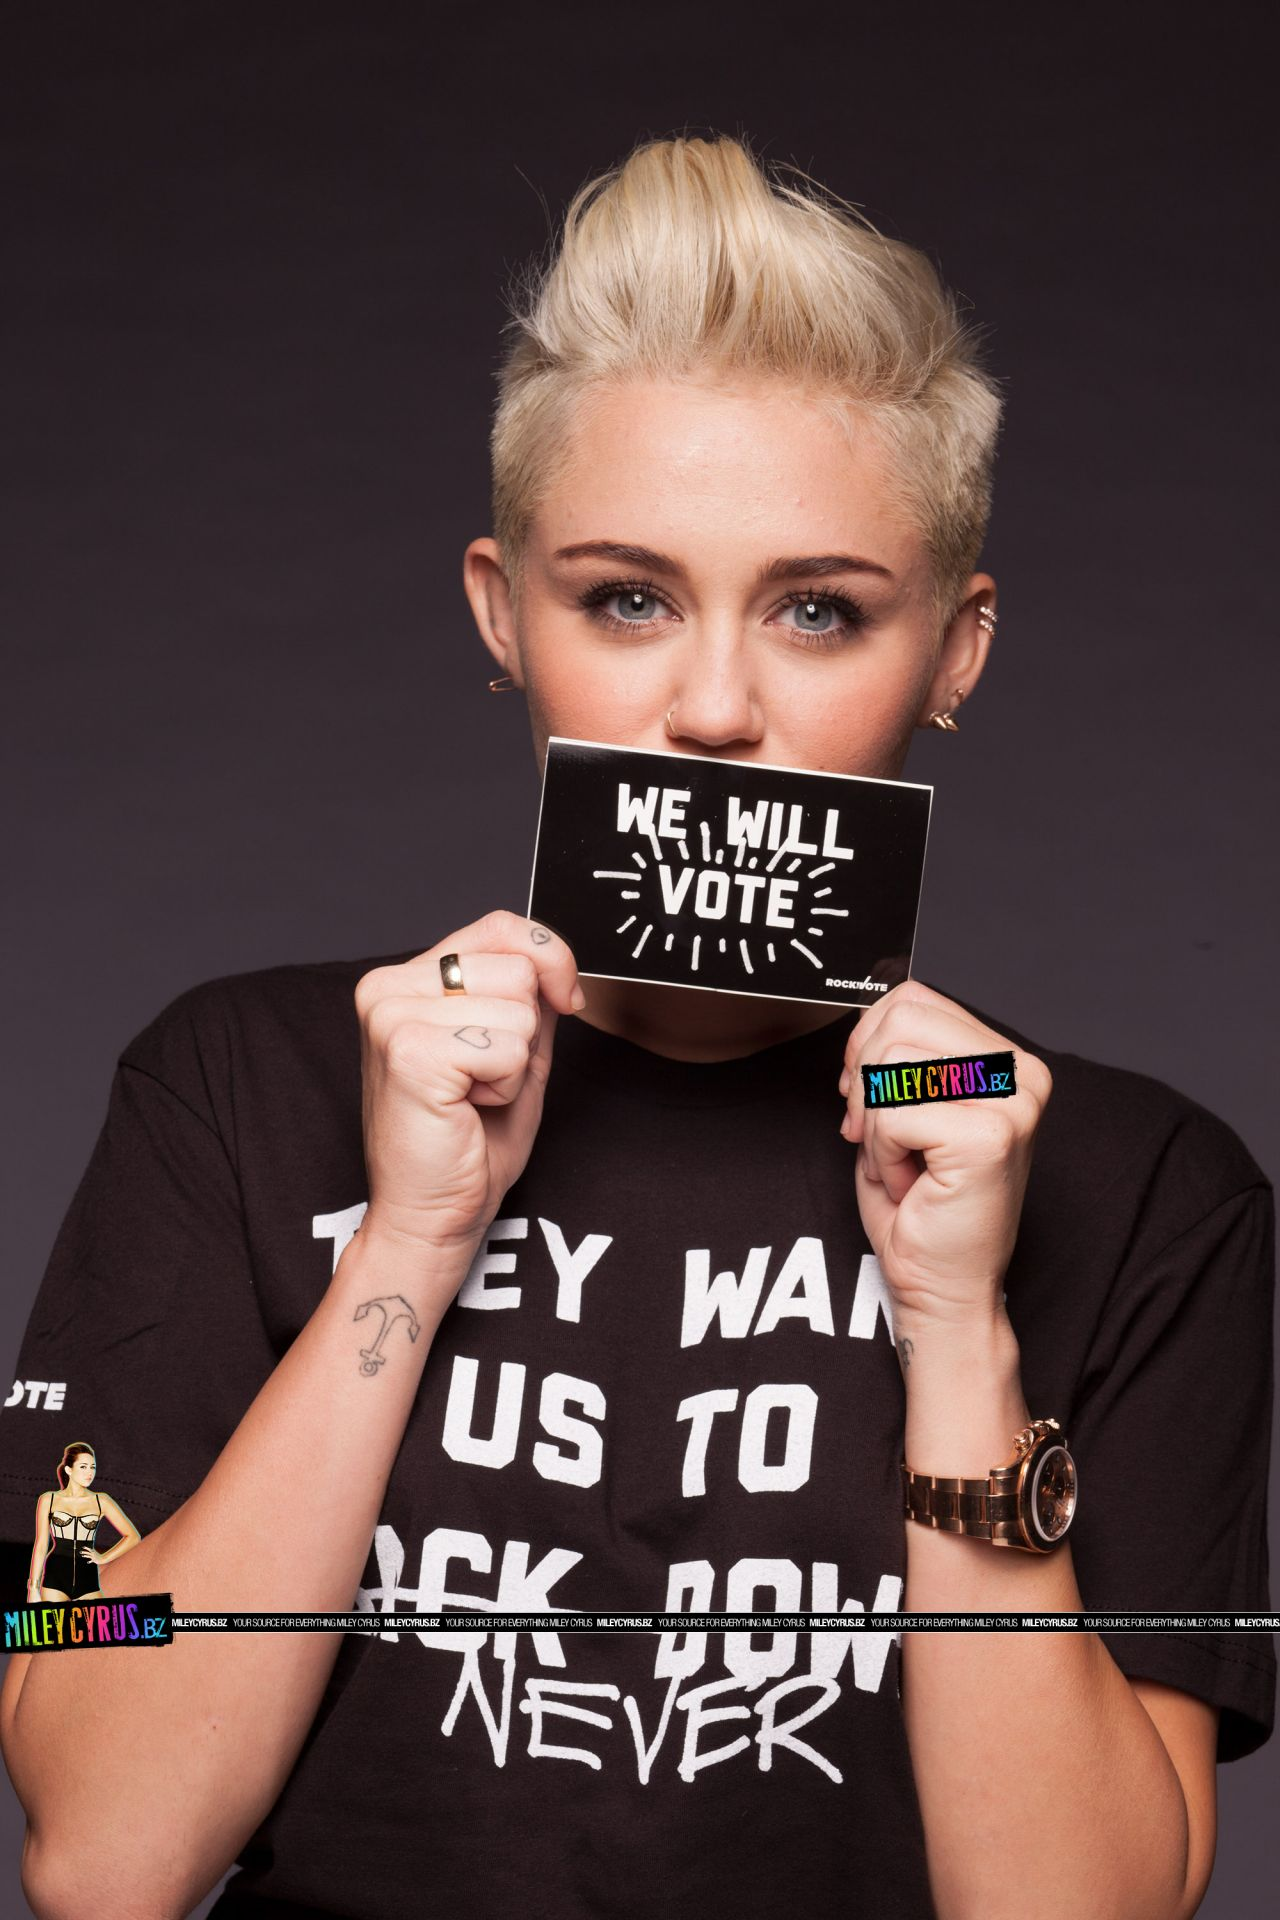 Miley Cyrus Wears Short Shorts Rock The Vote 2012 Photoshoot